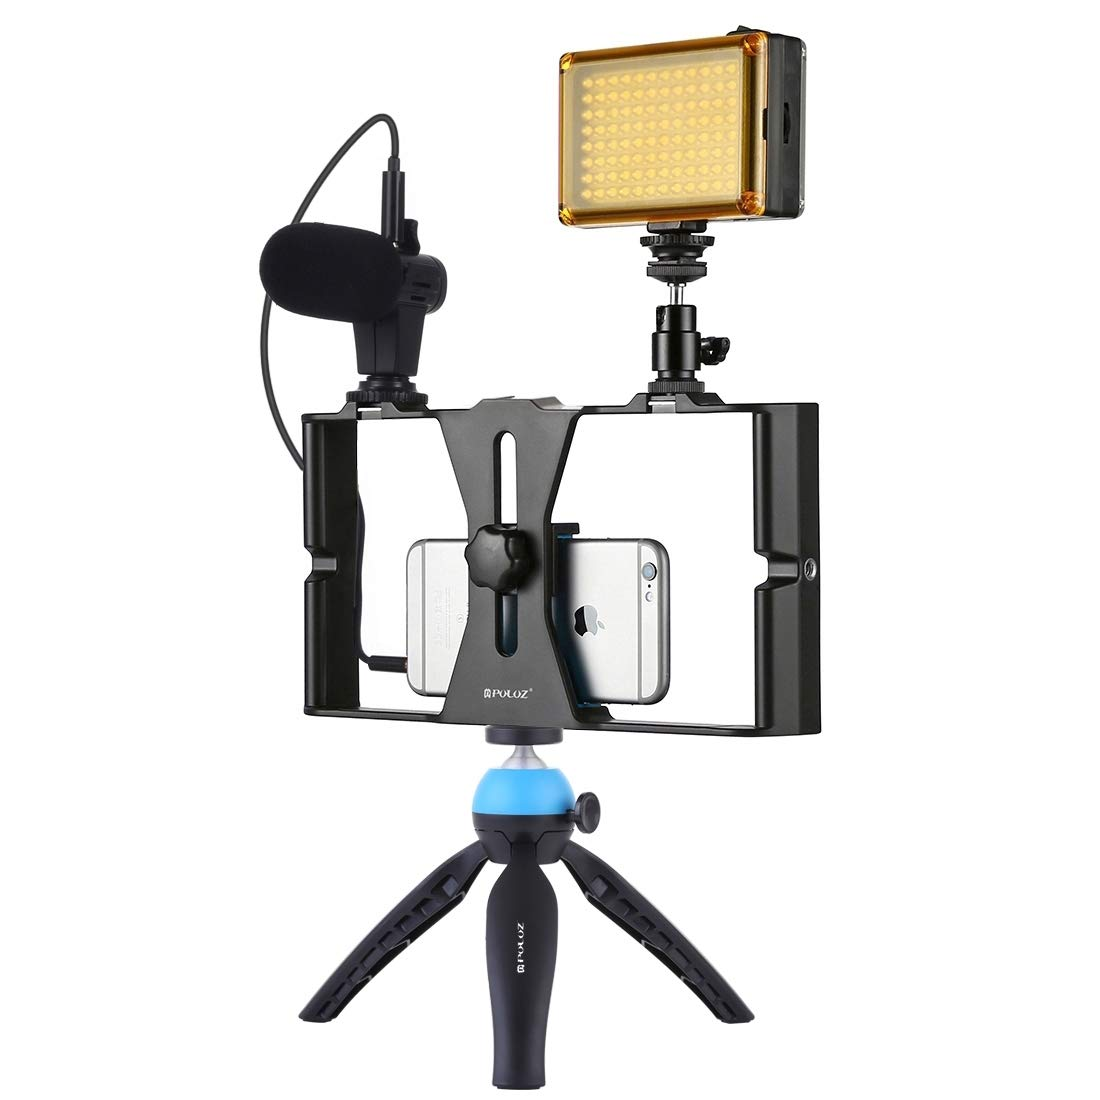 4 in 1 Vlogging Live Broadcast LED Selfie Light Smartphone Video Rig Kits with Microphone + Tripod Mount + Cold Shoe Tripod Head for iPhone, Galaxy, Huawei, Xiaomi, HTC, LG, Google, and Other Smartpho by CAOMING